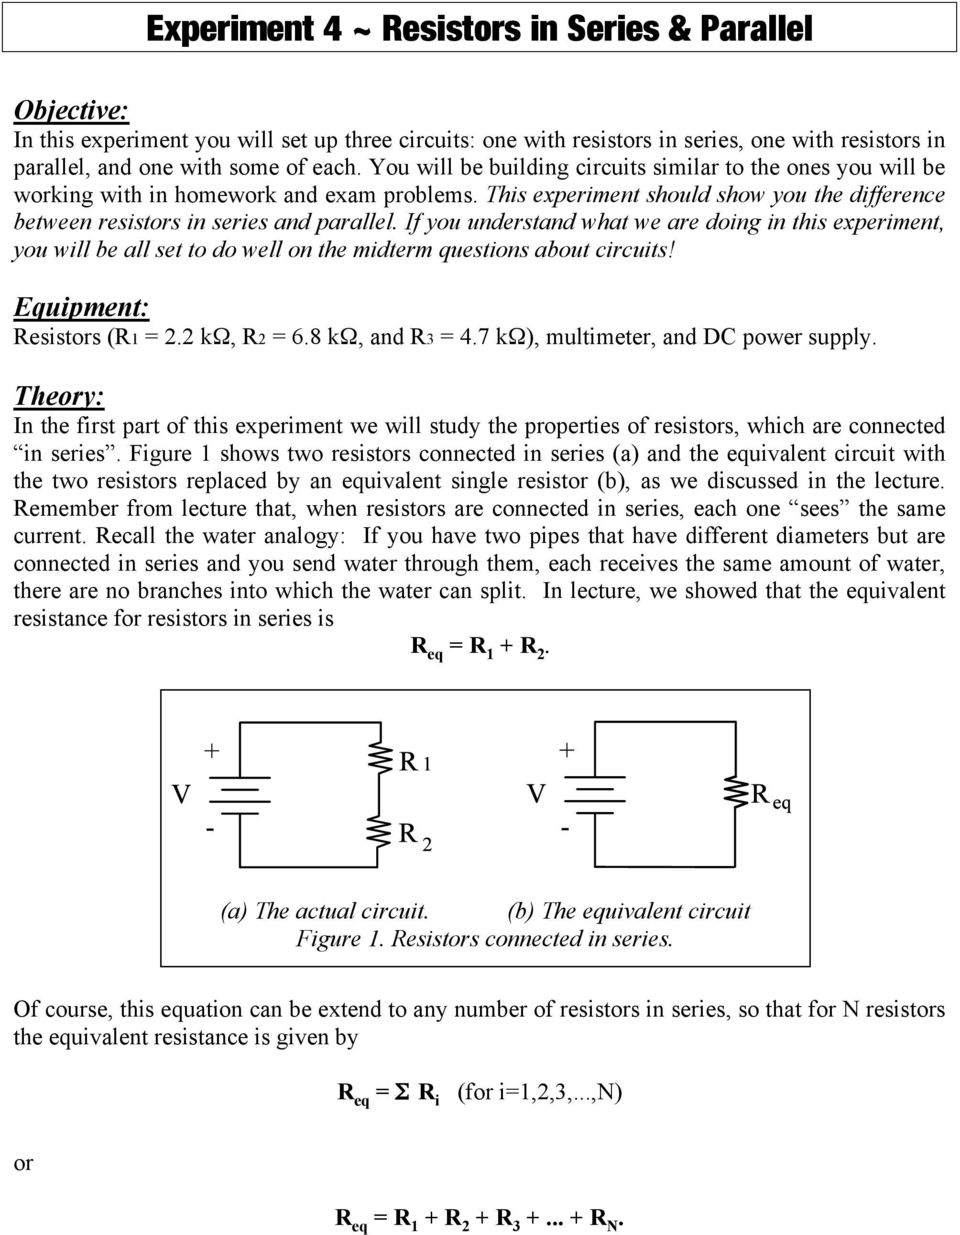 Experiment 4 Resistors In Series Parallel Pdf Simple Voltage Divider Question Electrical Engineering If You Understand What We Are Doing This Will Be All Set